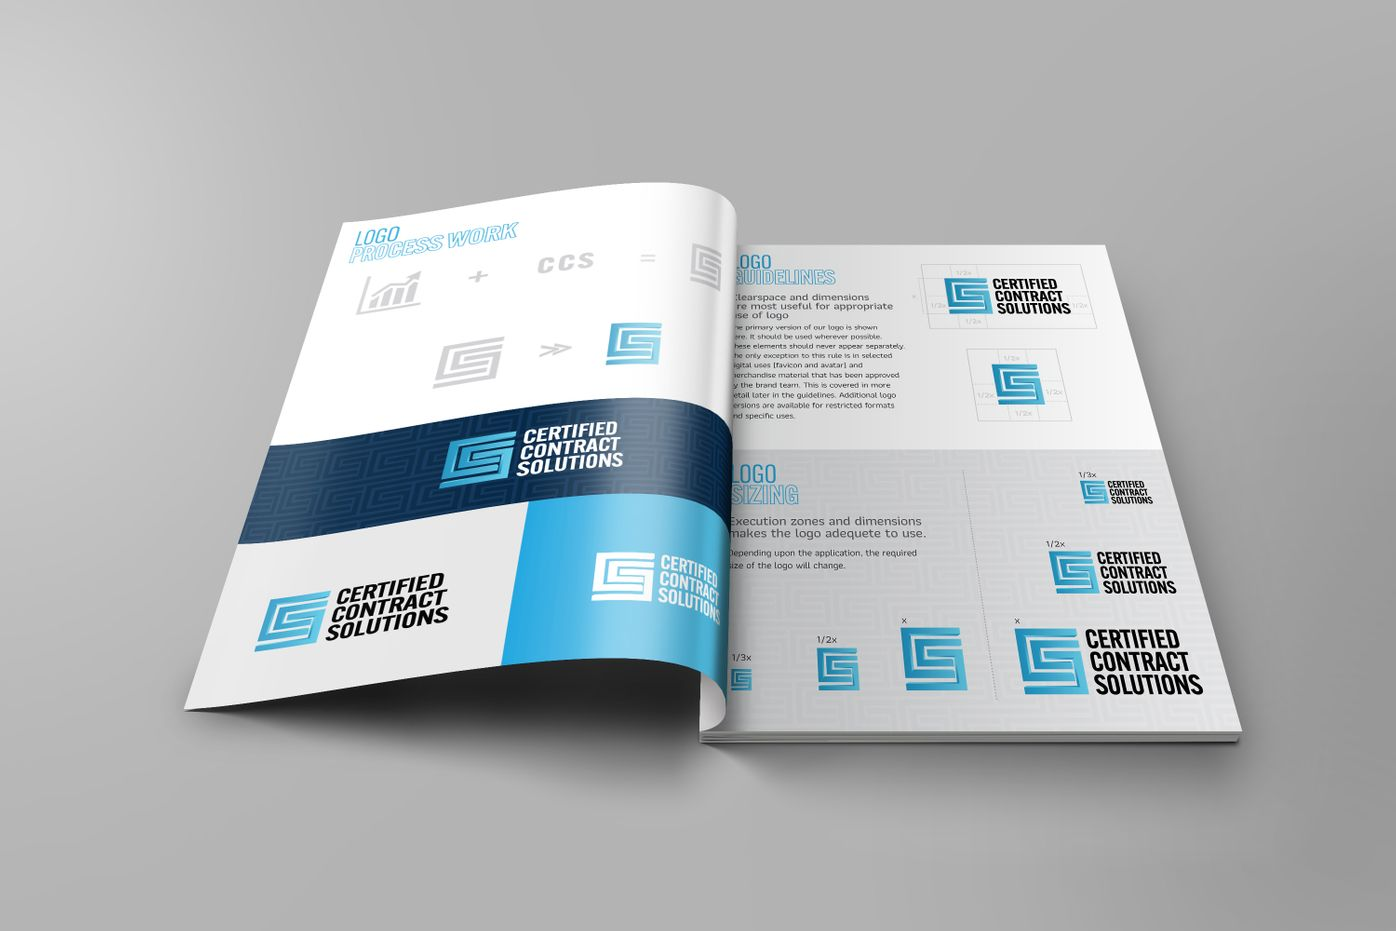 Certified Contract Solutions Brand Guidelines developed by Splurge Media